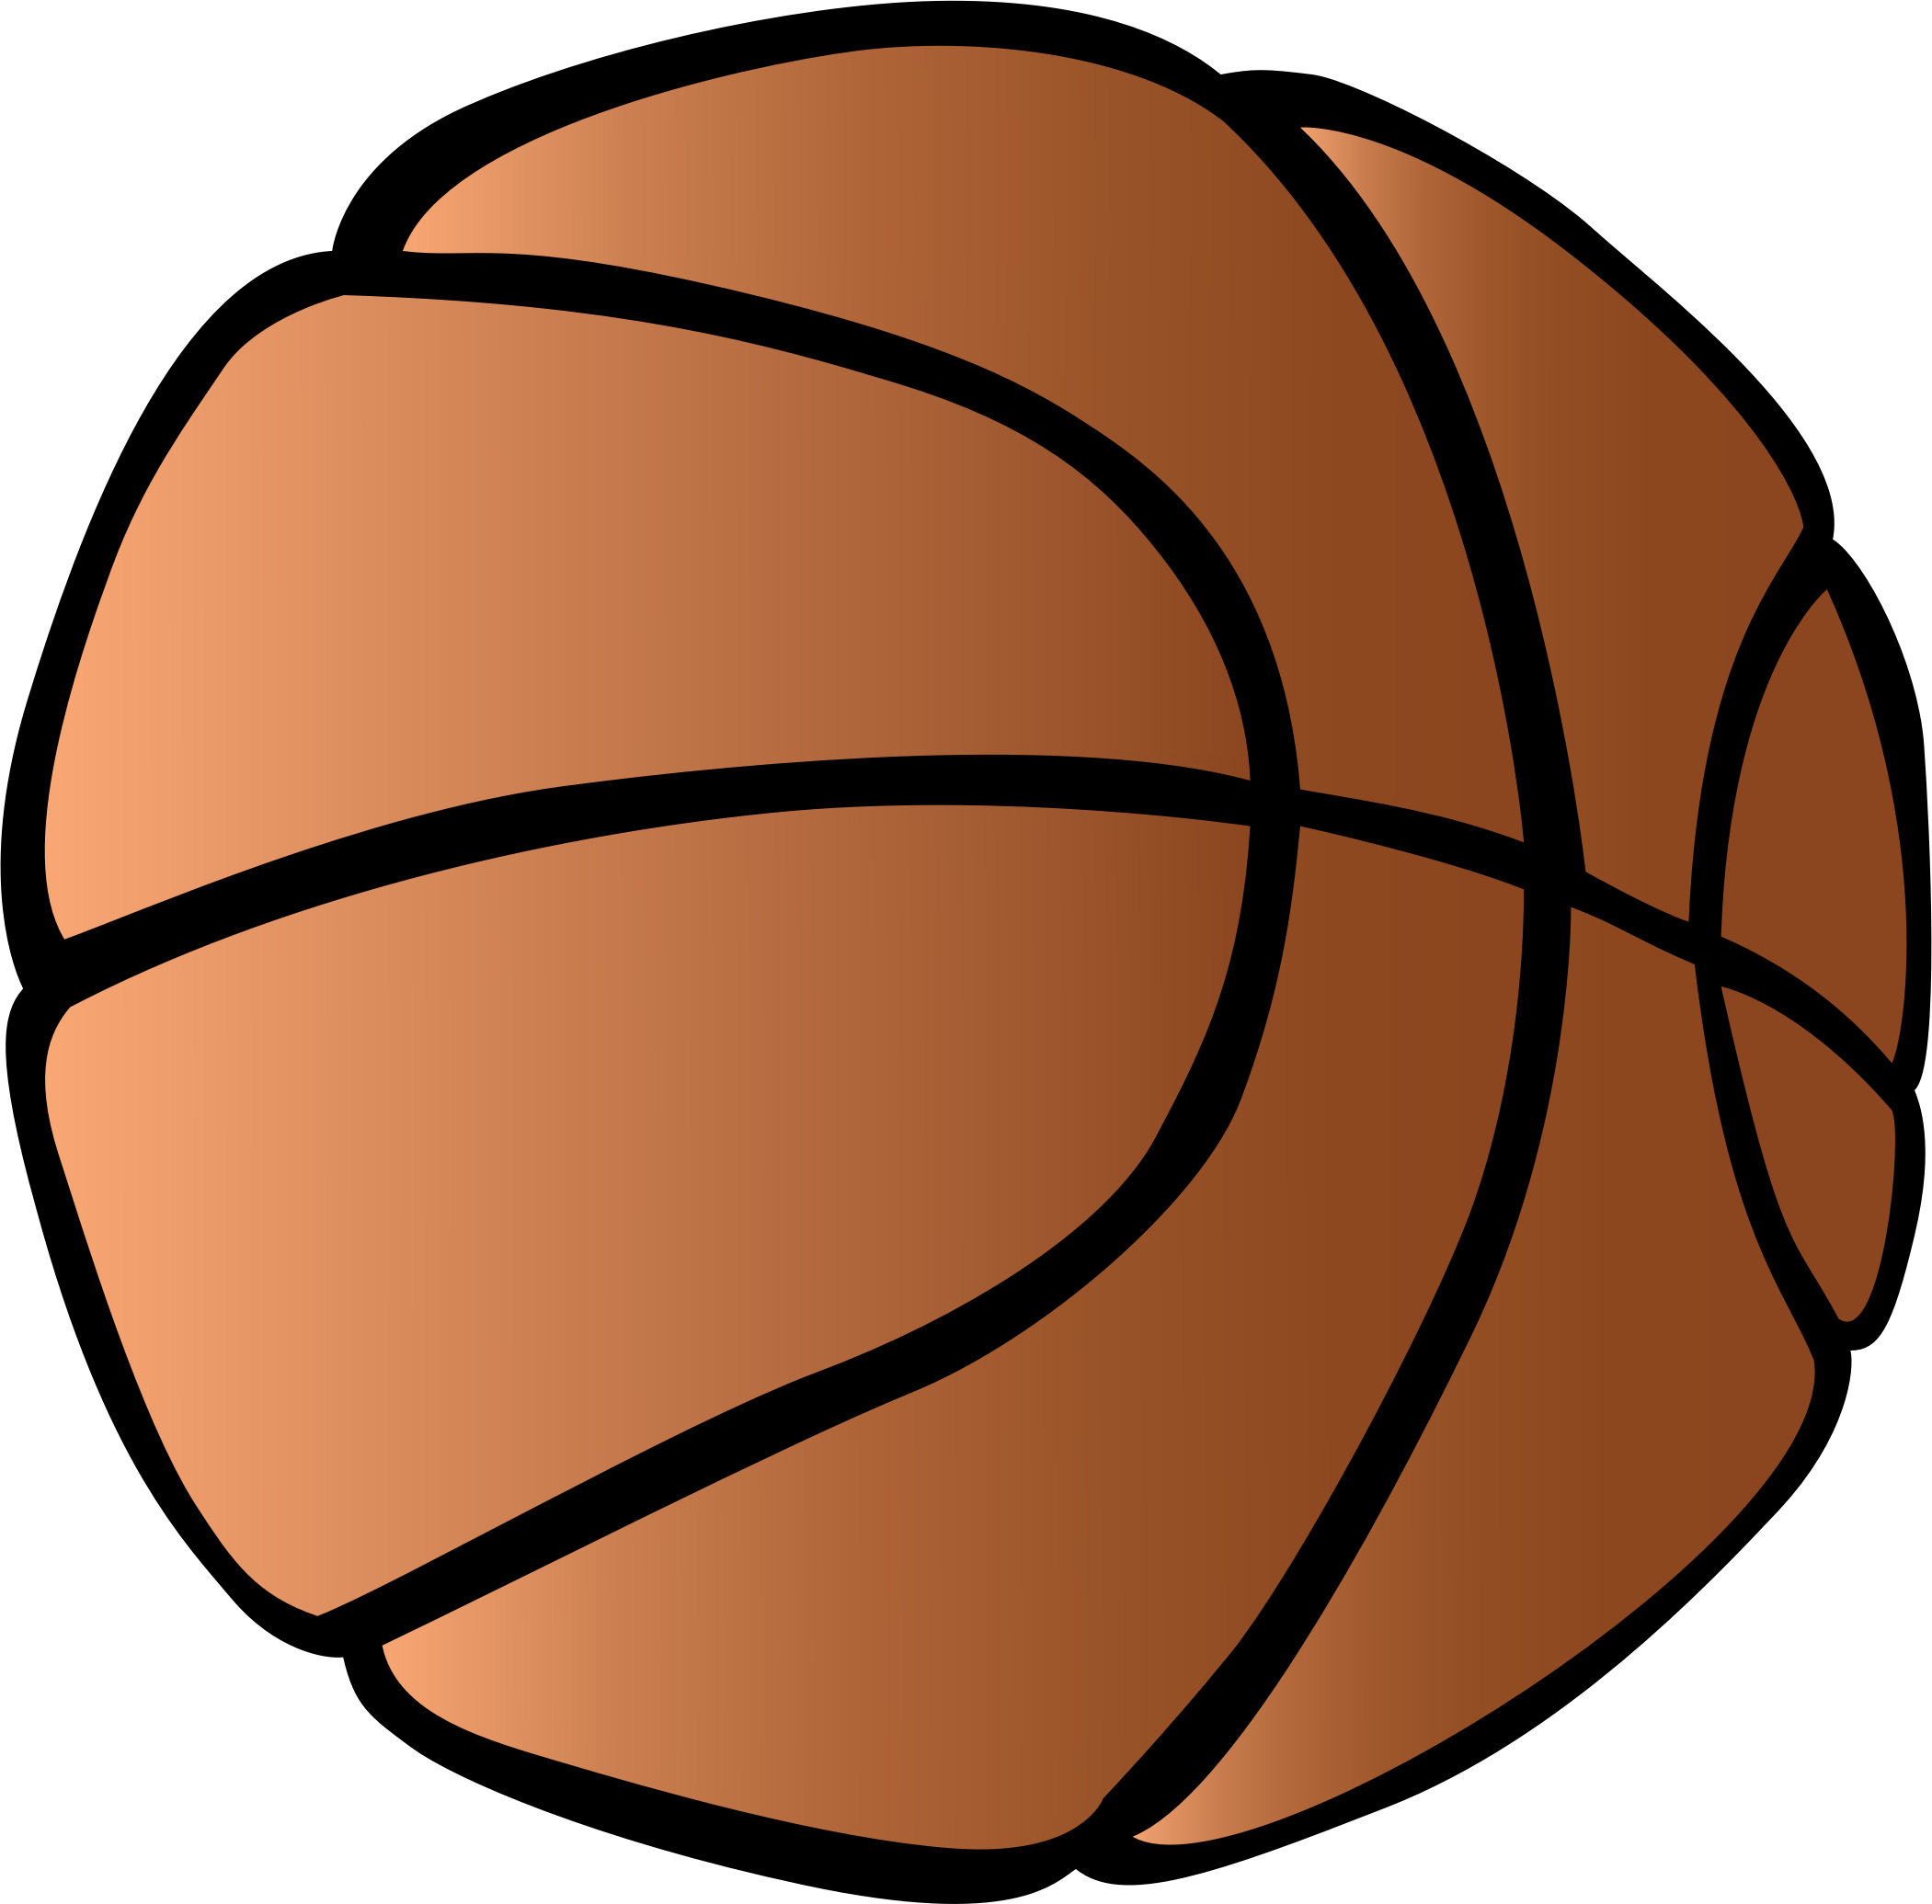 The basketball team clipart png free Clipart - Basketball png free